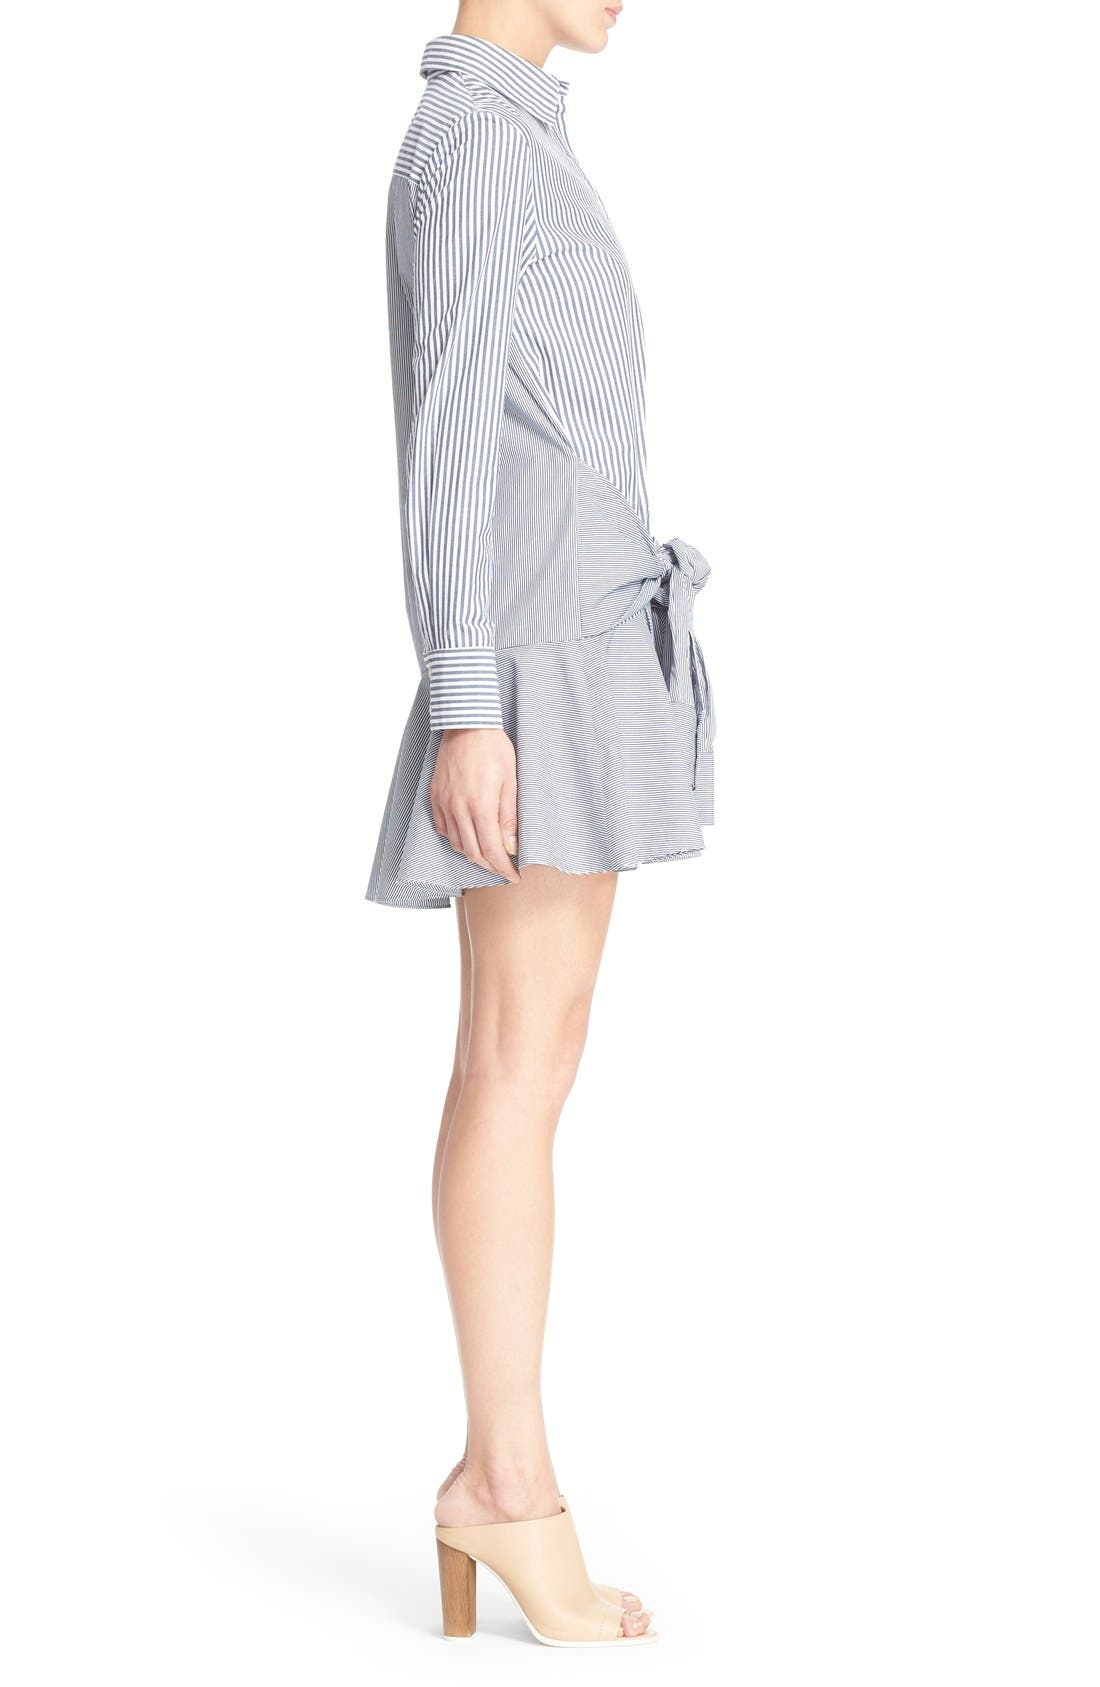 DEREK LAM 10 CROSBY, Tie Waist Shirtdress, Alternate thumbnail 2, color, 419